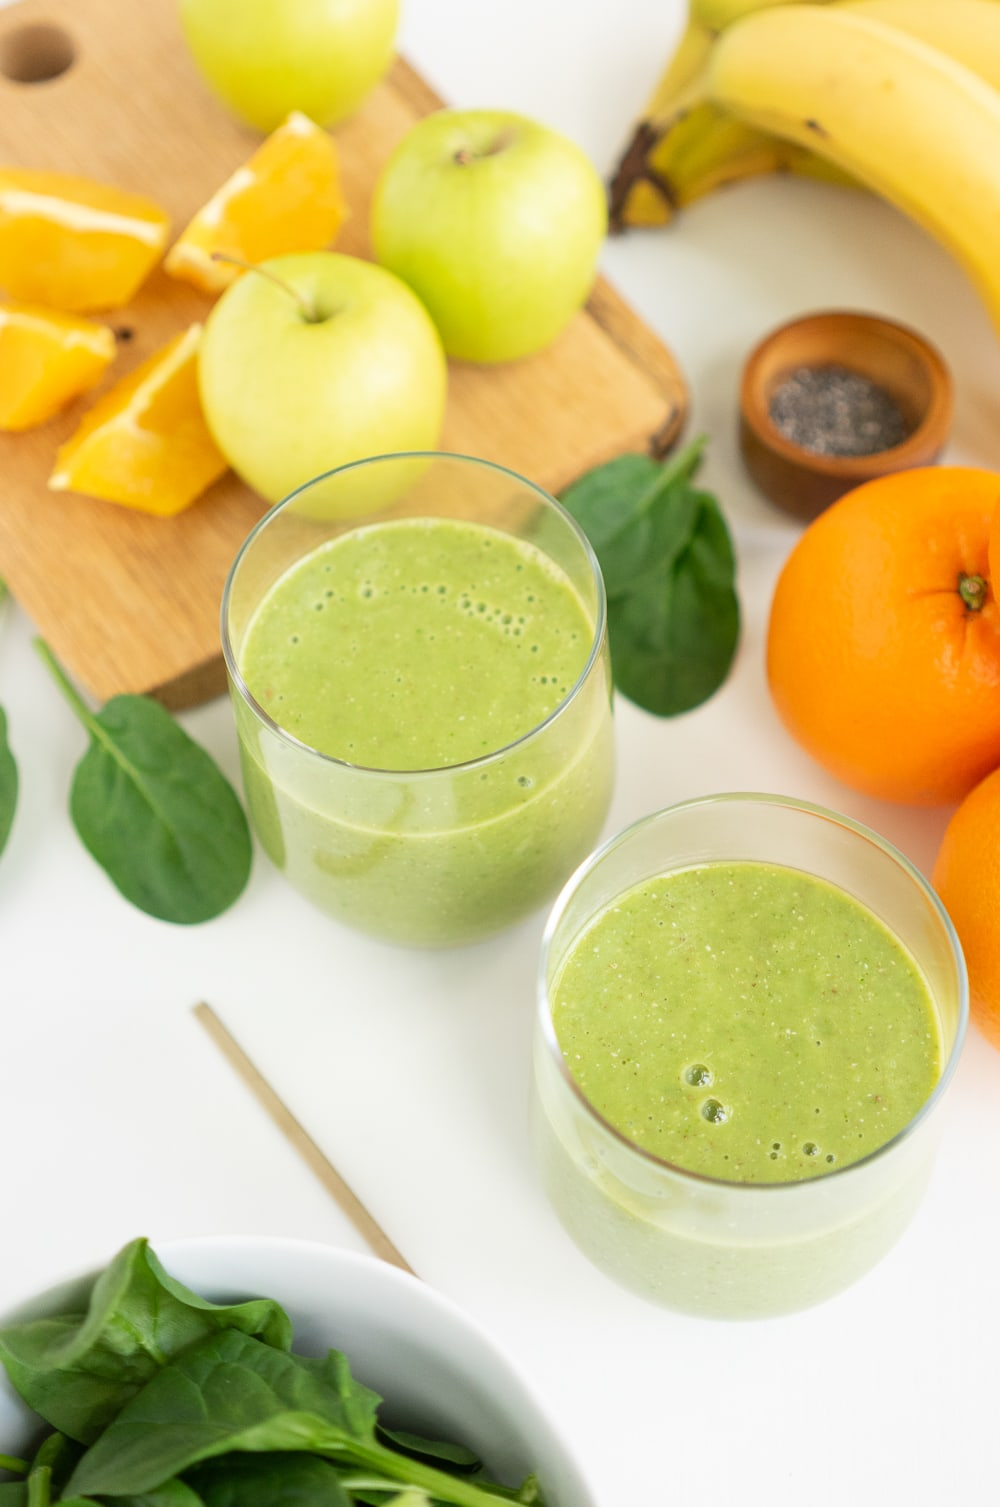 Green smoothie in glasses ready to drink